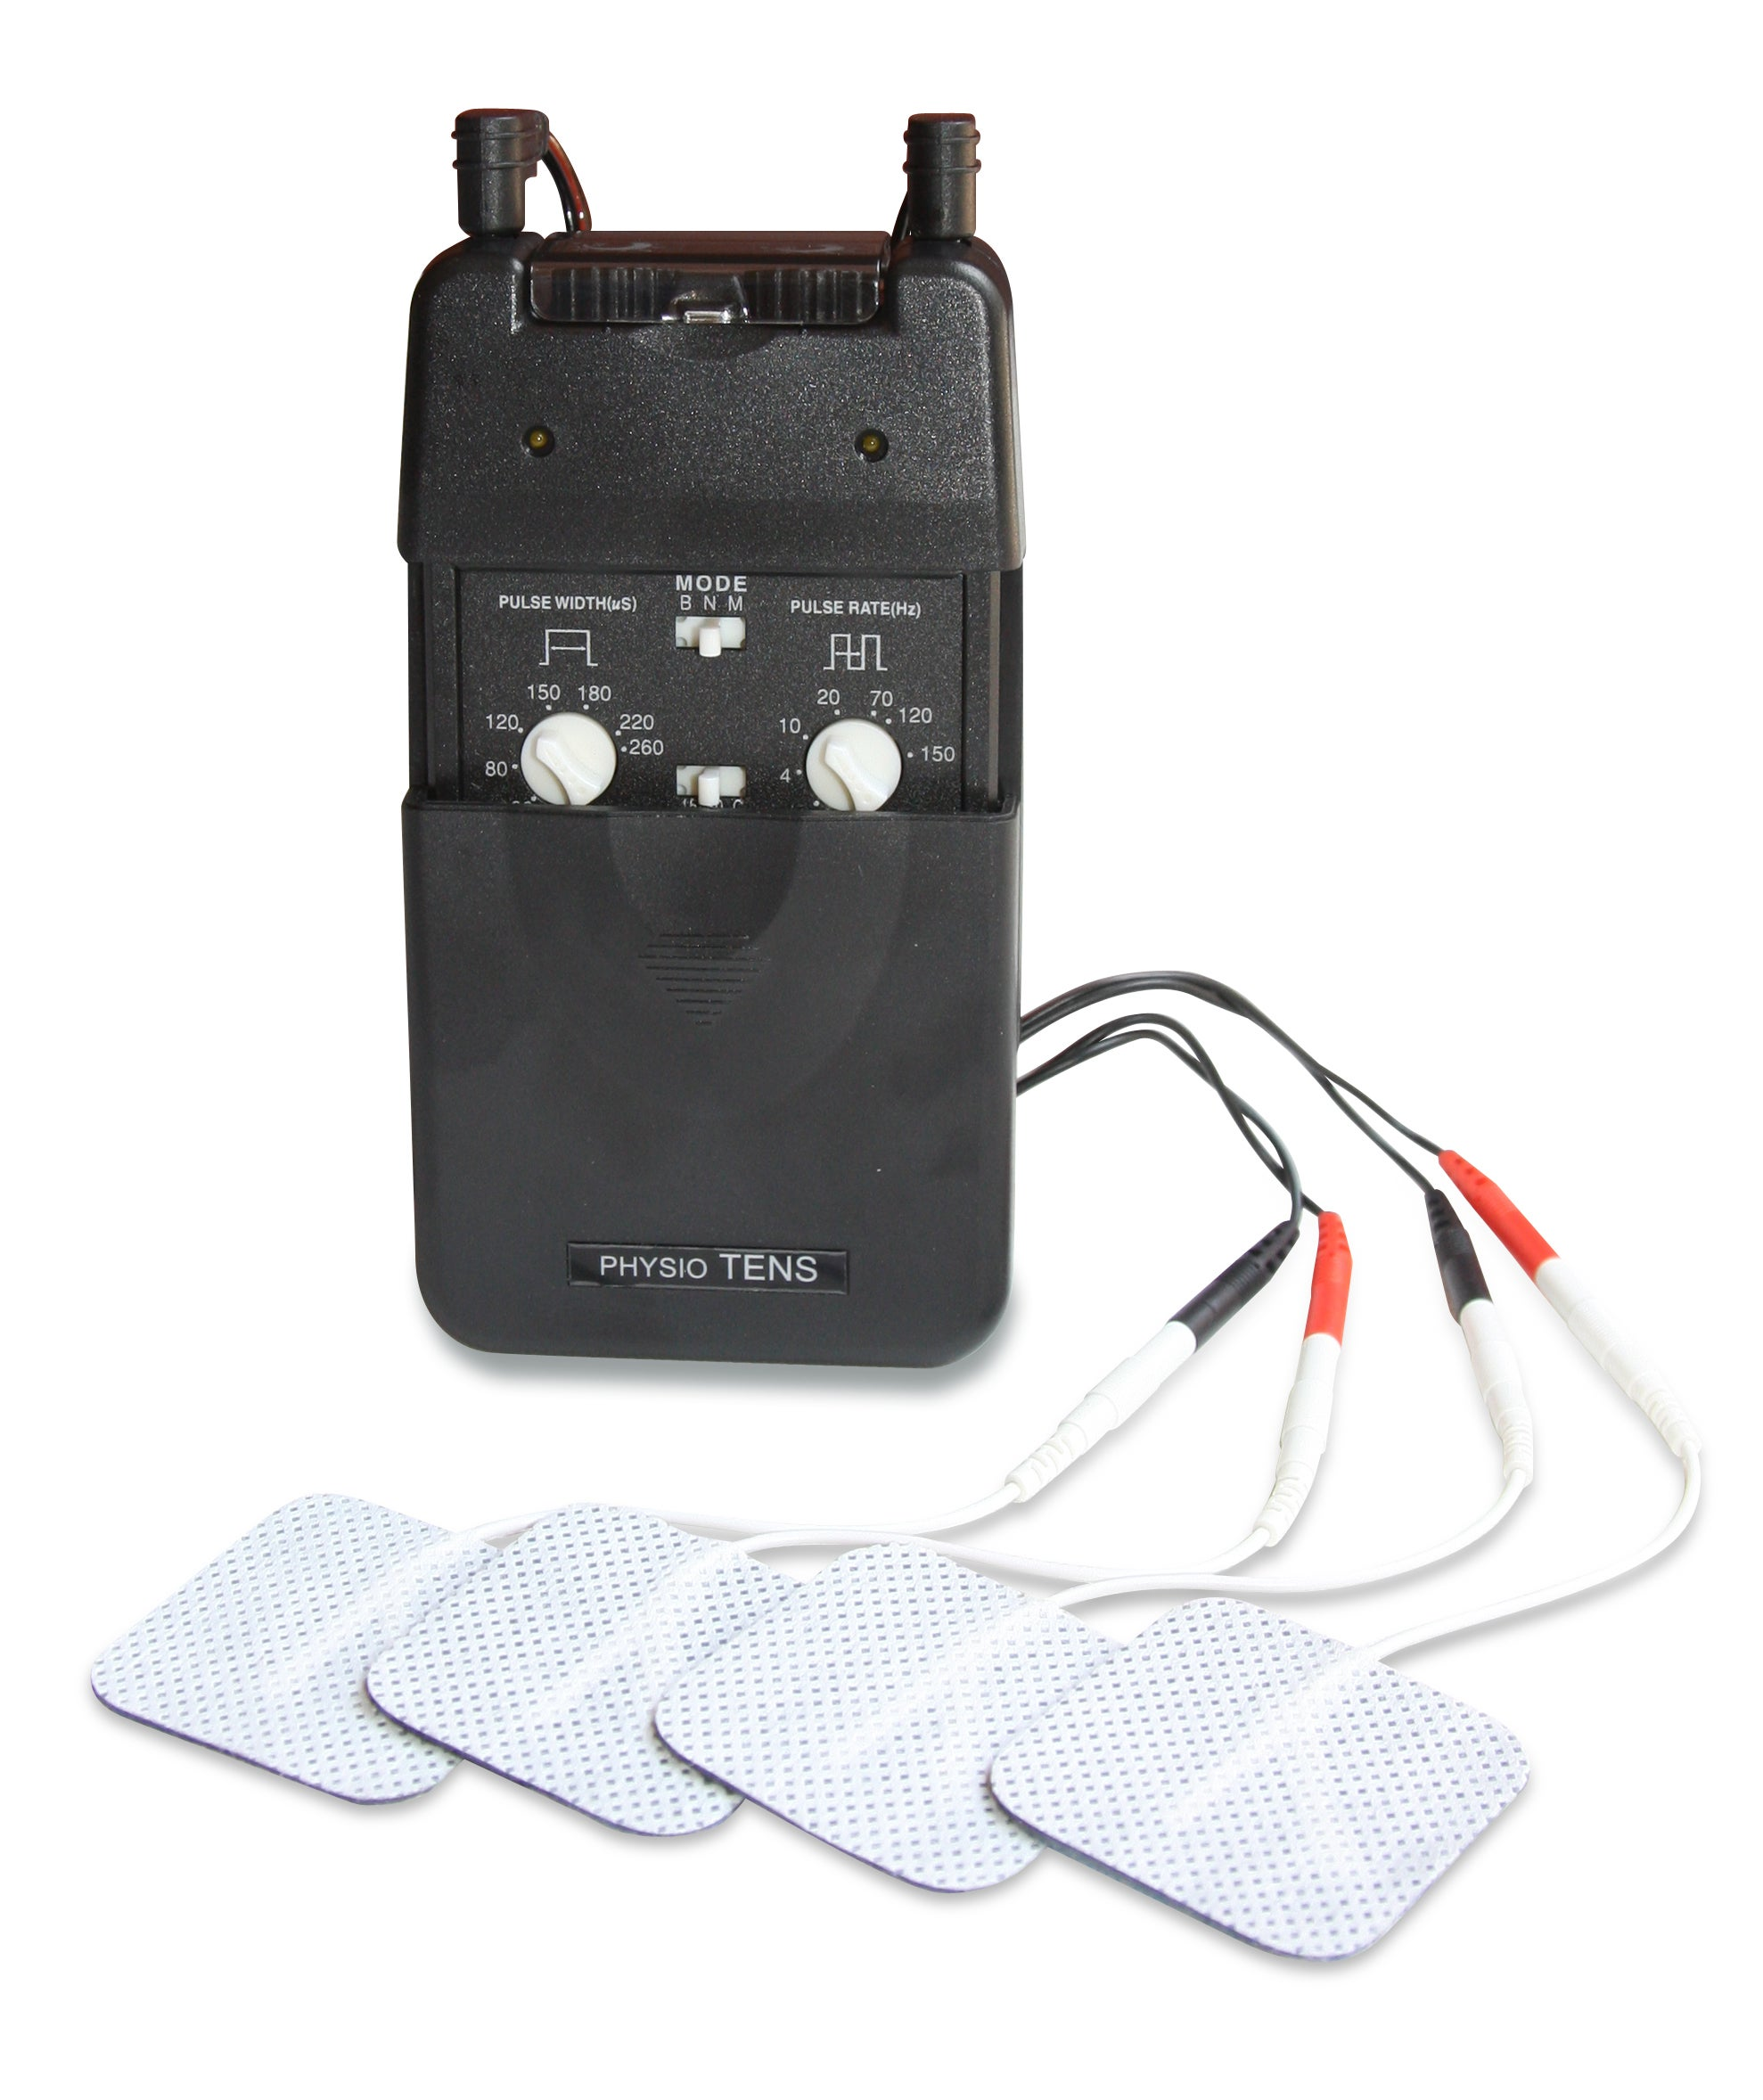 physio tens machine